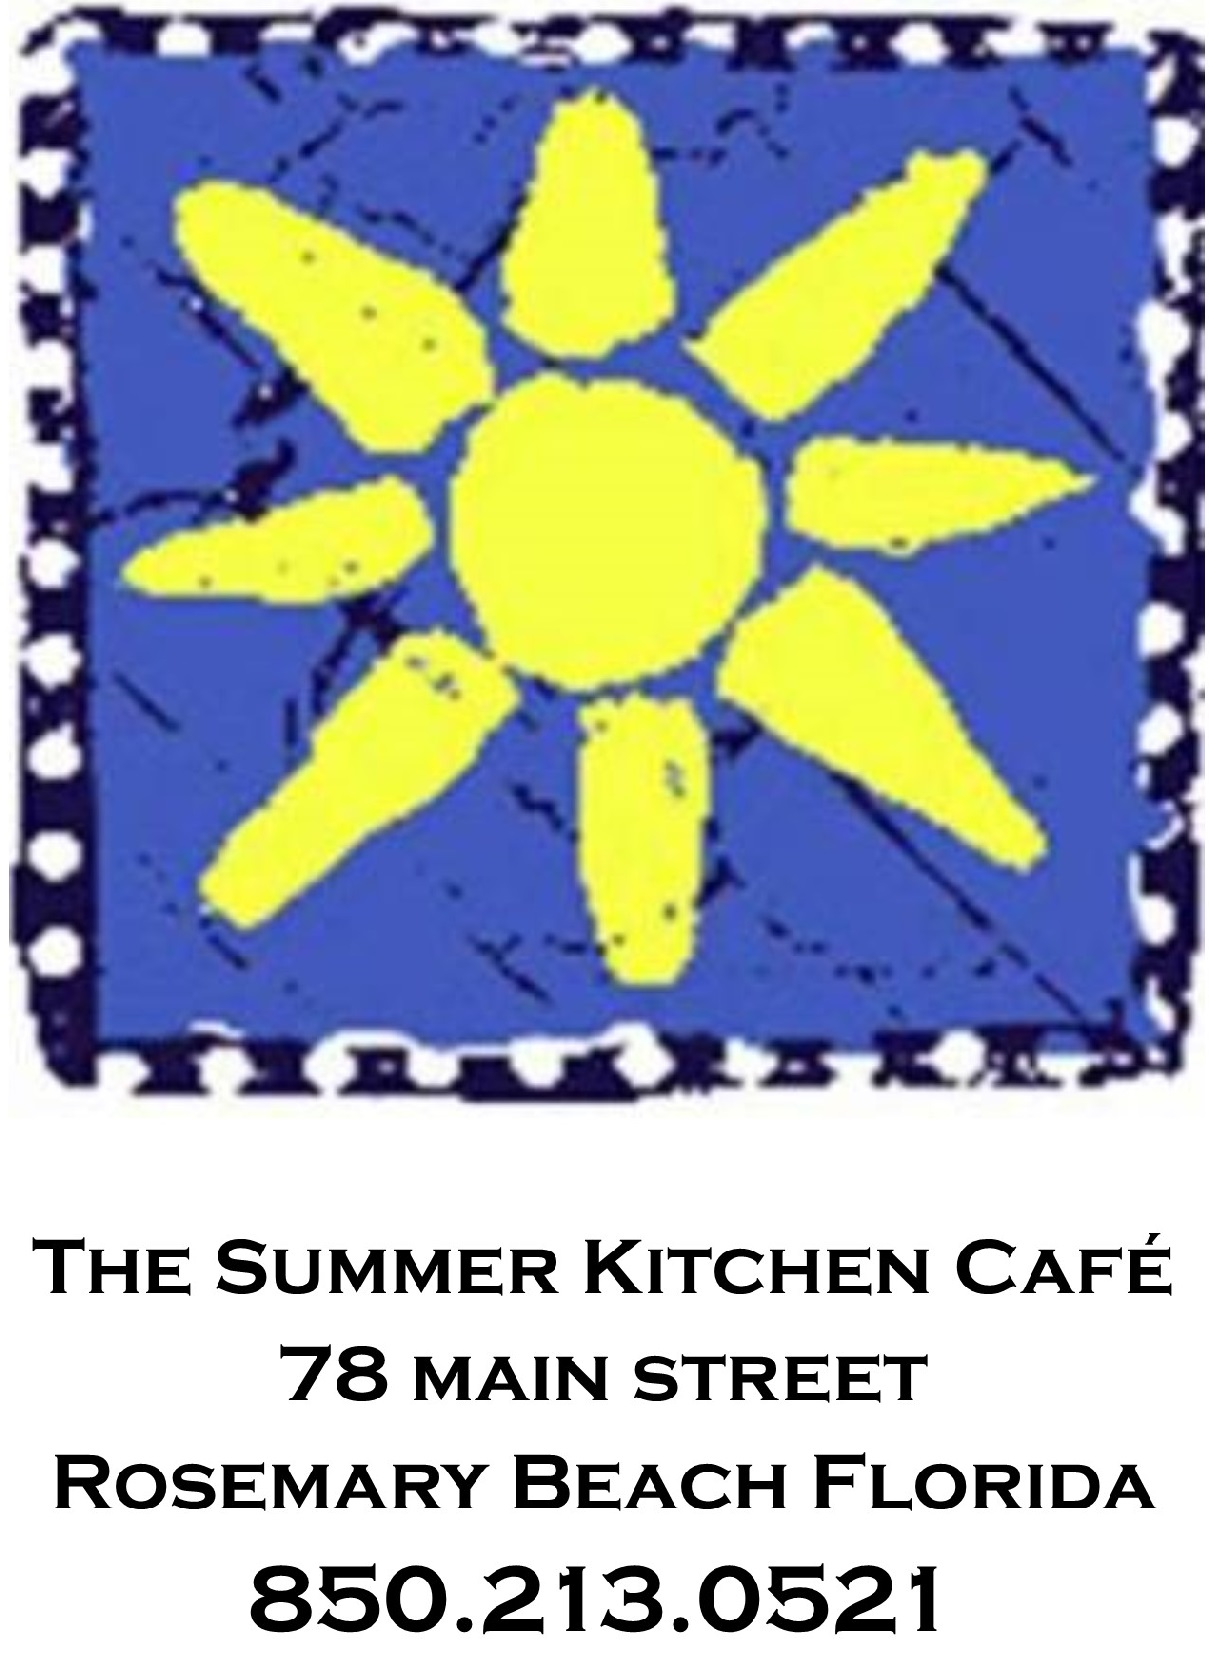 The Summer Kitchen Cafe